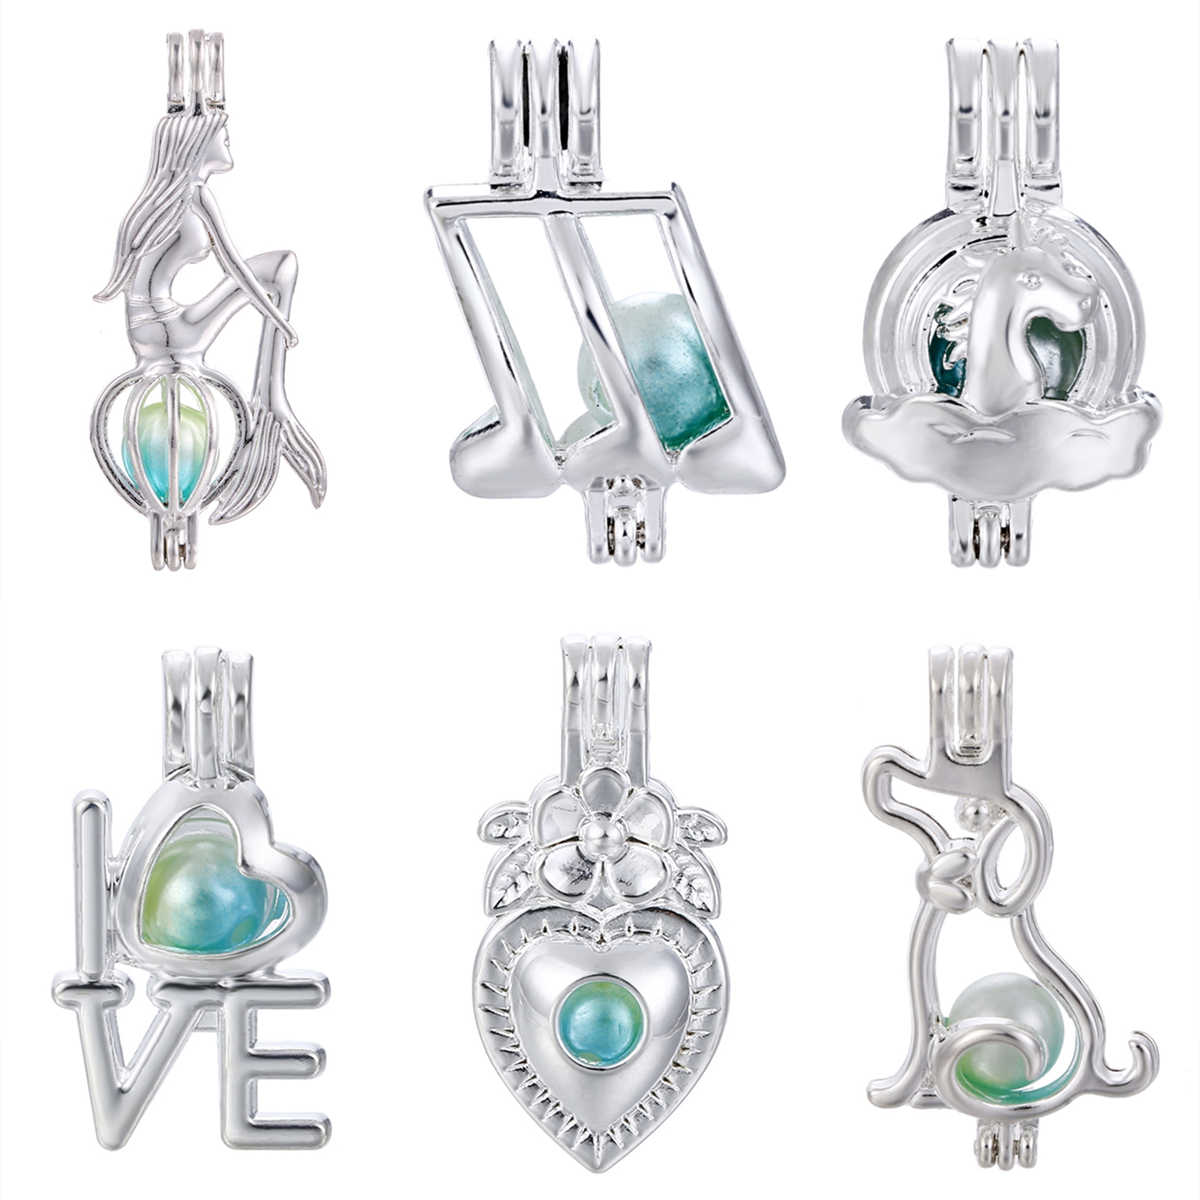 5pcs Bright Silver Mermaid Dog Love Pearl Cage Locket Pendant for Aroma Perfume Essential Oil Diffuser Bracelet Necklace Making